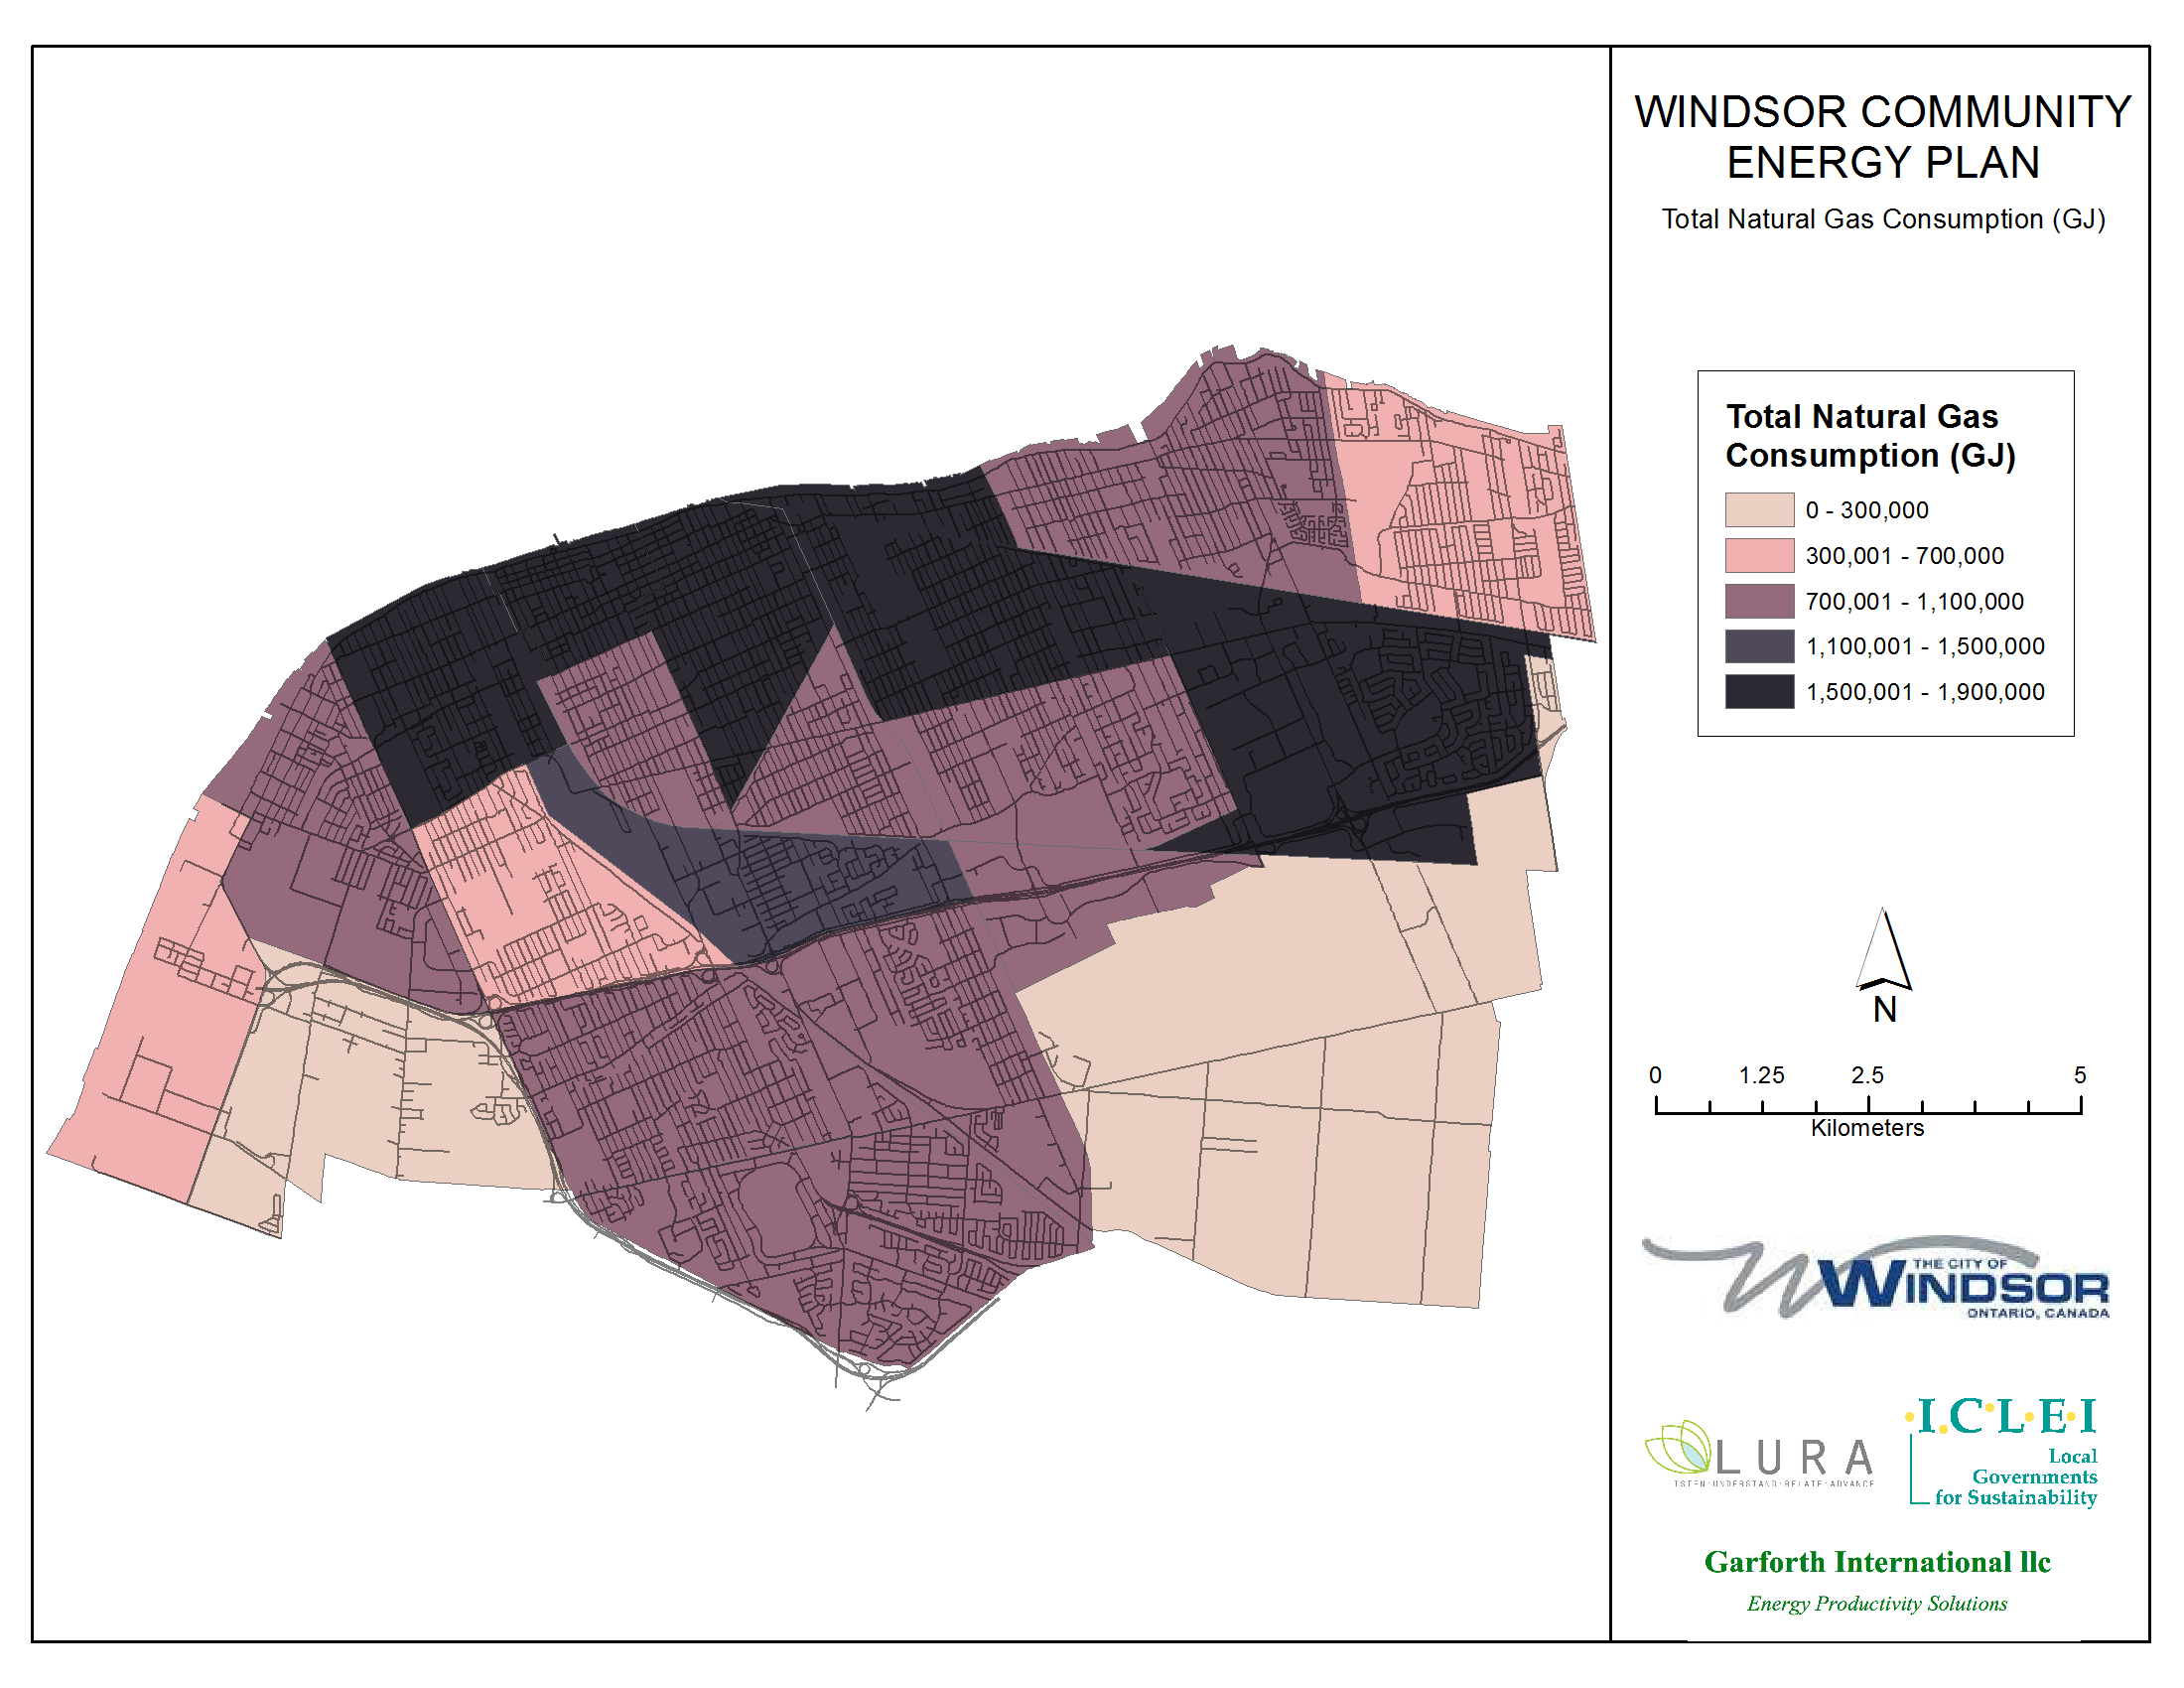 Thumbnail map of total natural gas consumption within the City of Windsor